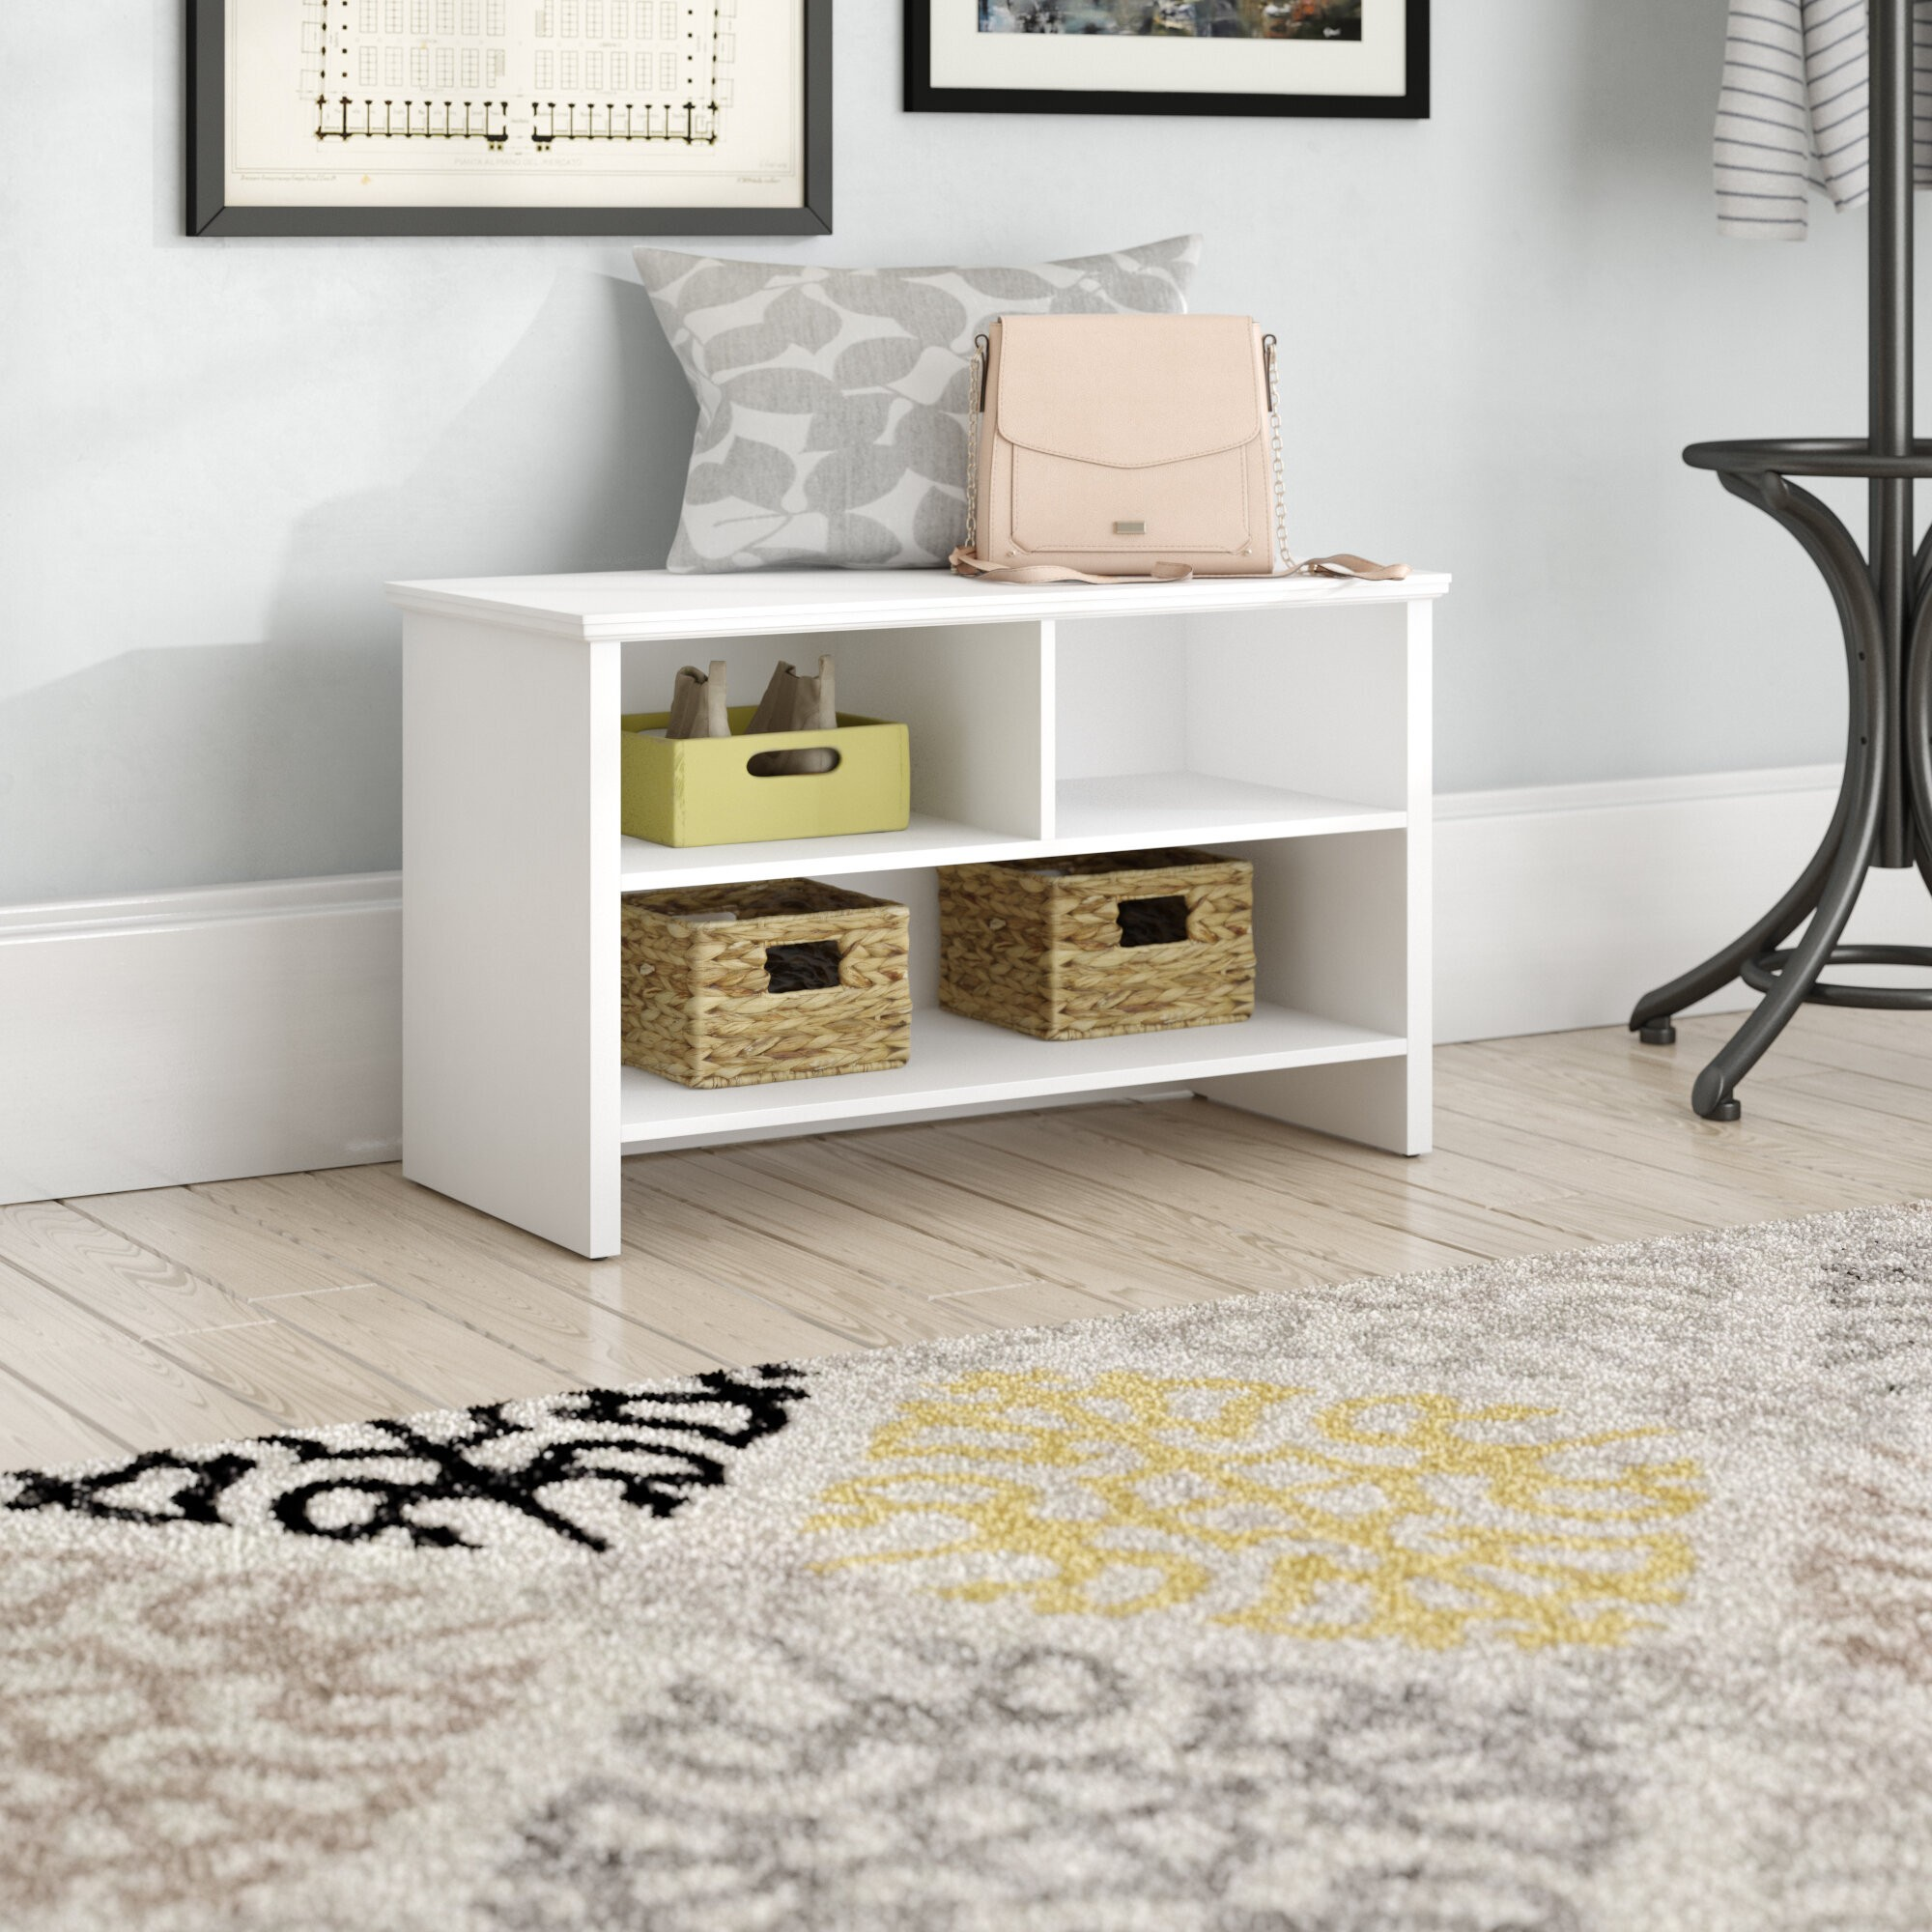 How To Choose A Shoe Storage Bench